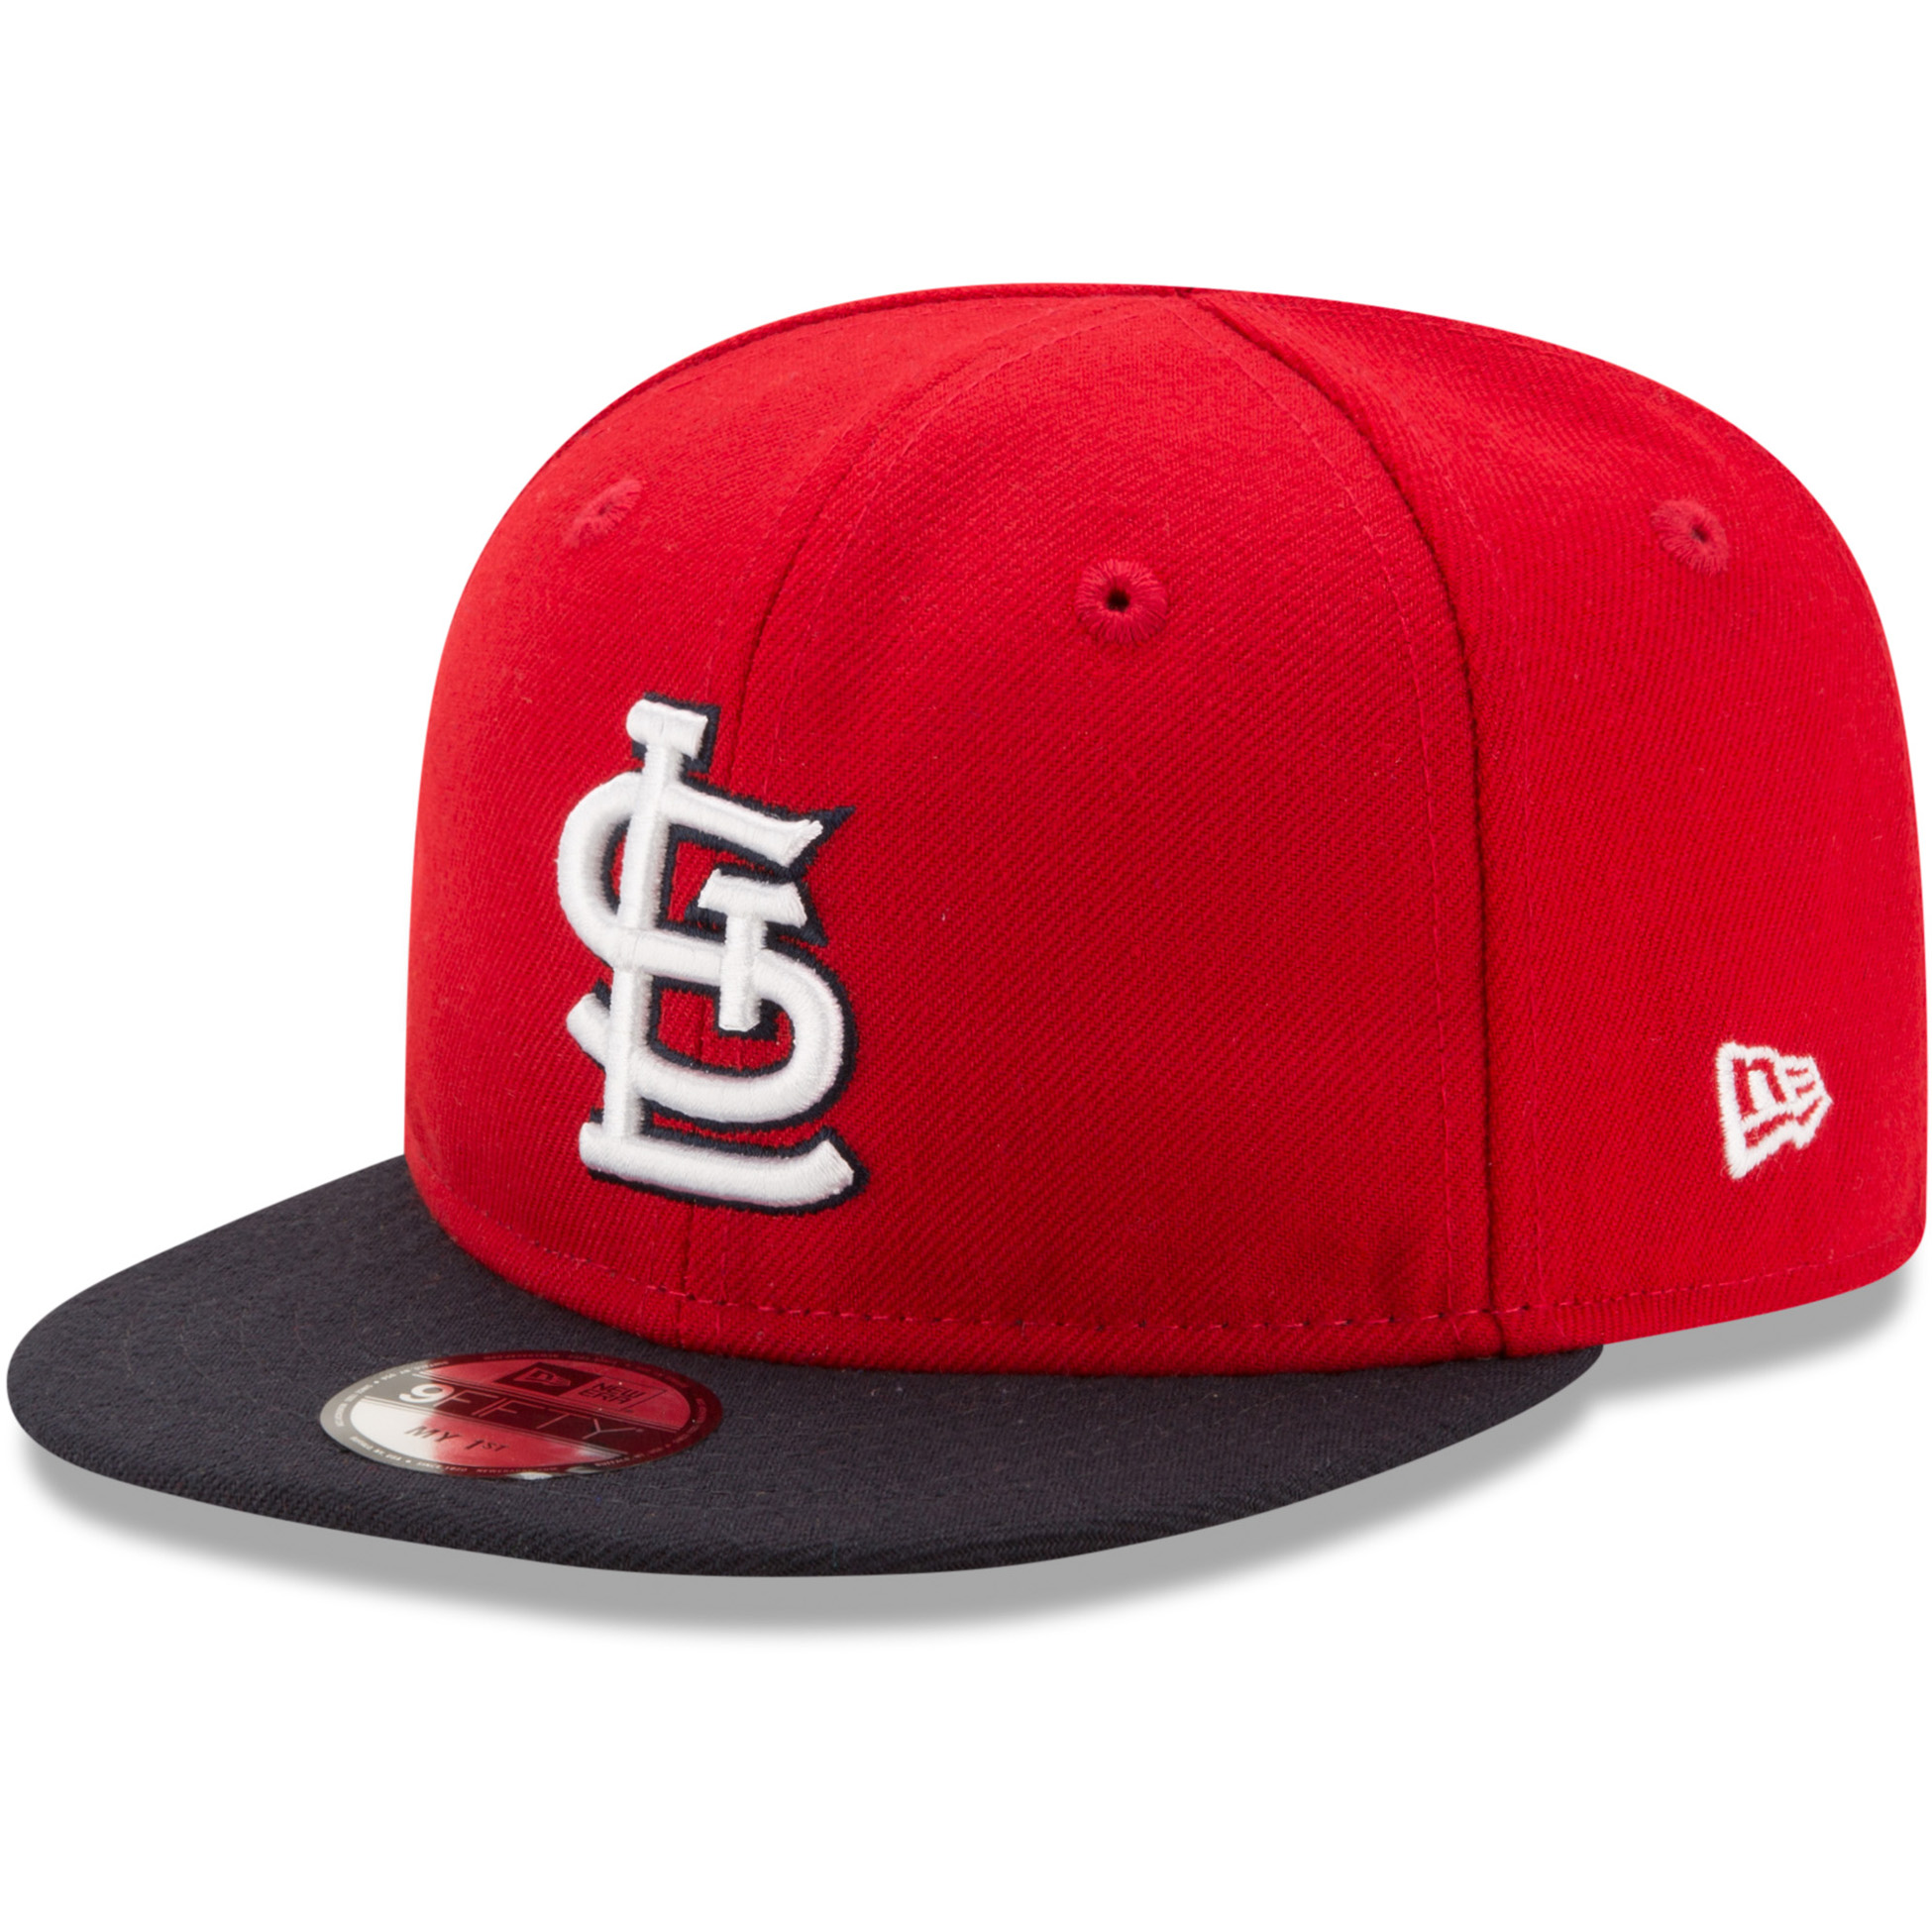 St. Louis Cardinals New Era Infant My First 9FIFTY Adjustable Hat - Red - OSFA